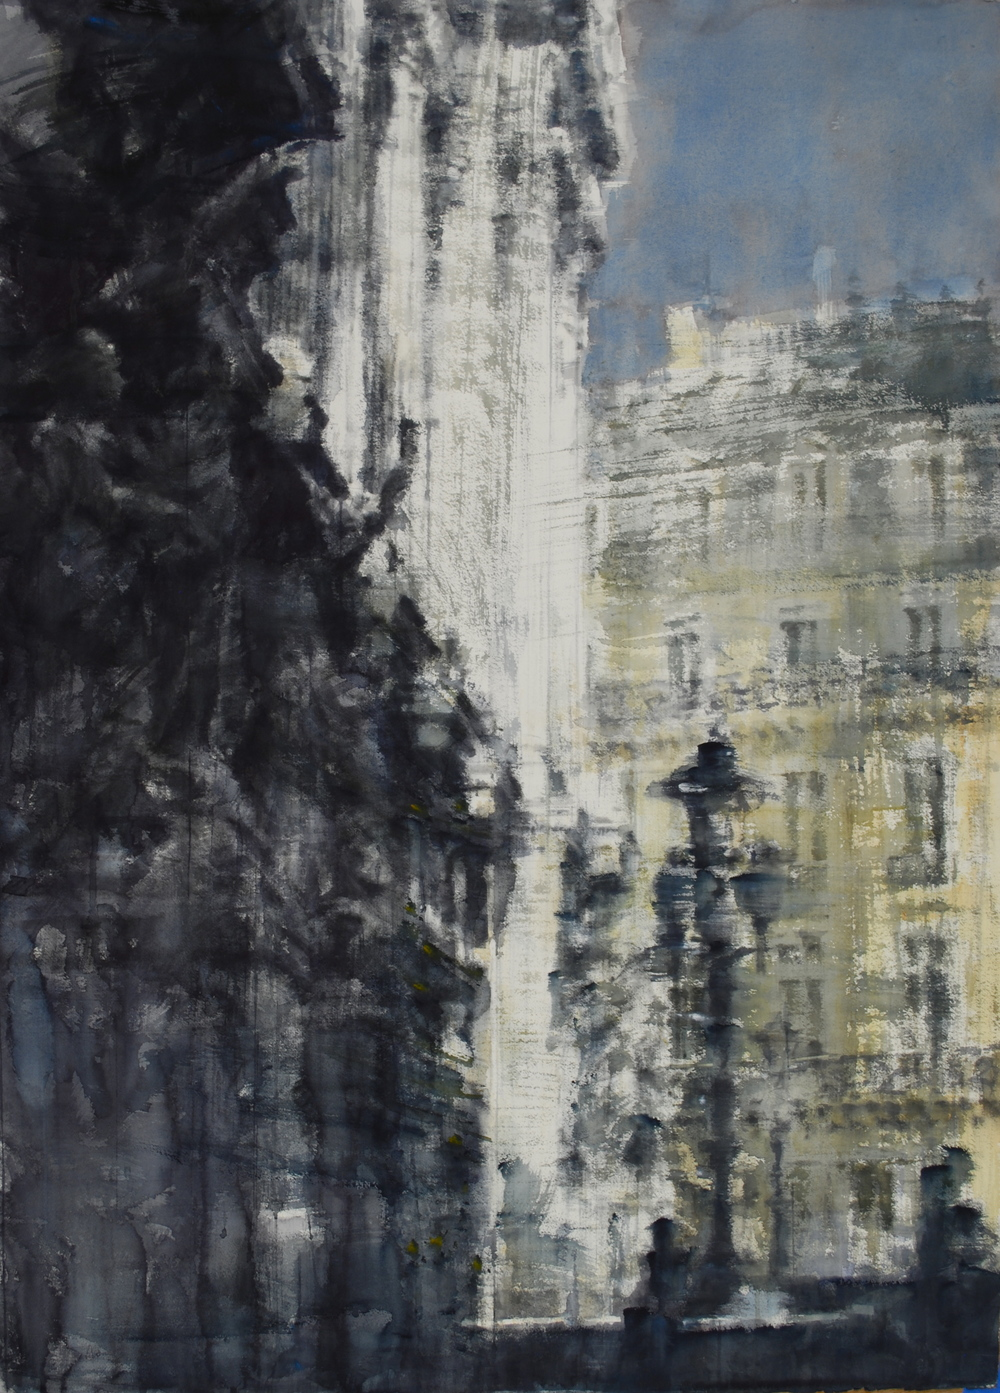 Paris Opera House, 37x51 inches